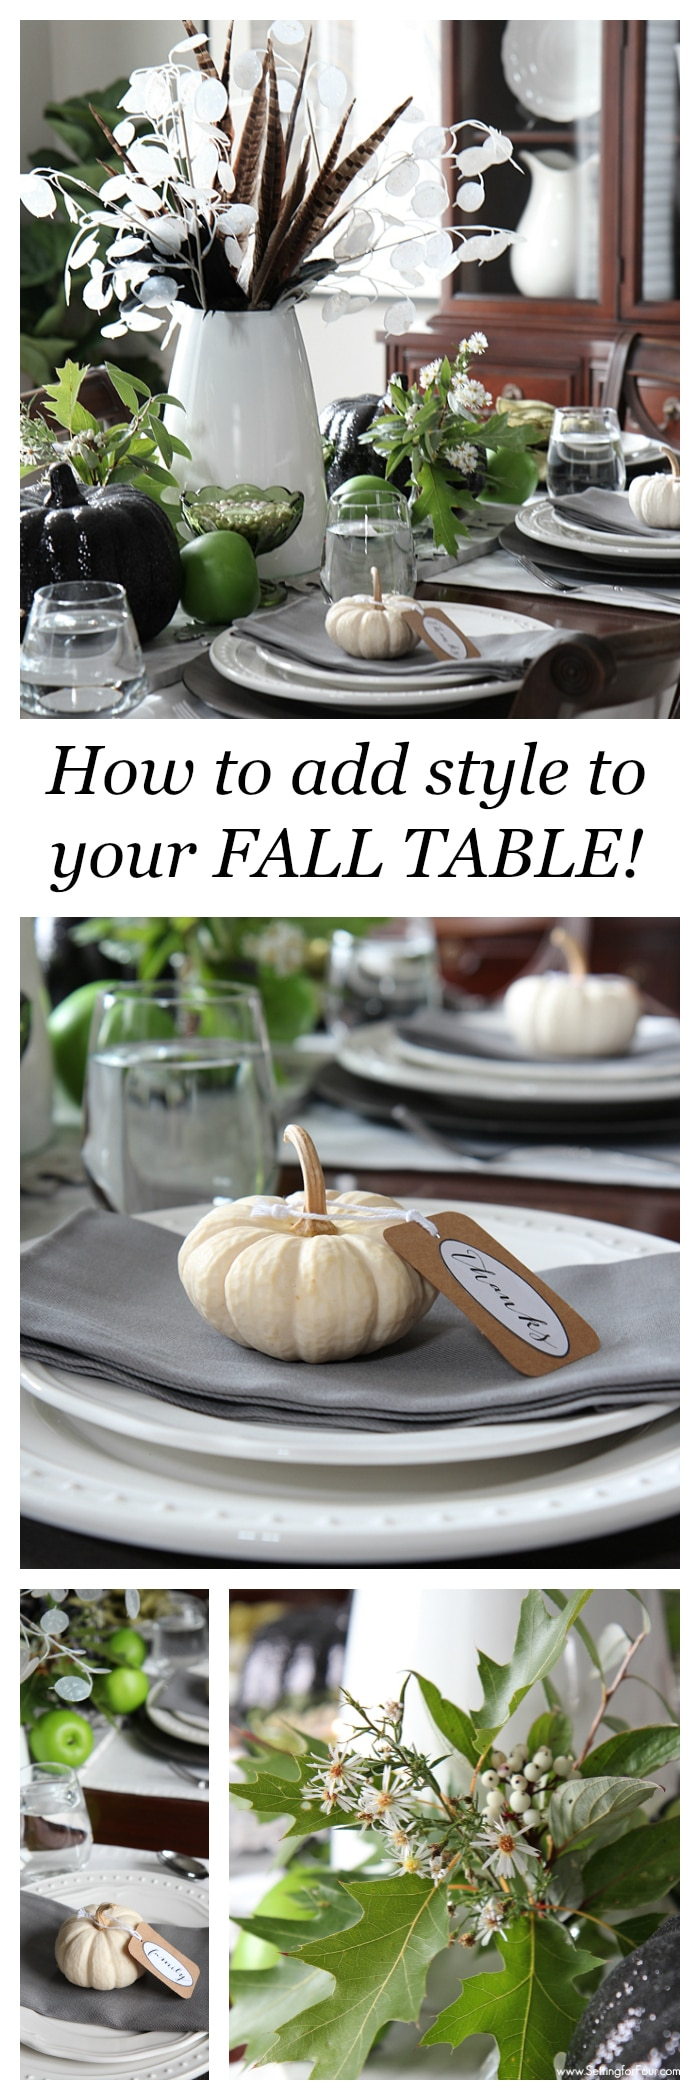 How to add style to your Fall table! How to make an easy DIY Fall centerpiece and elegant decor ideas for your Fall or Thanksgiving table! www.settingforfour.com